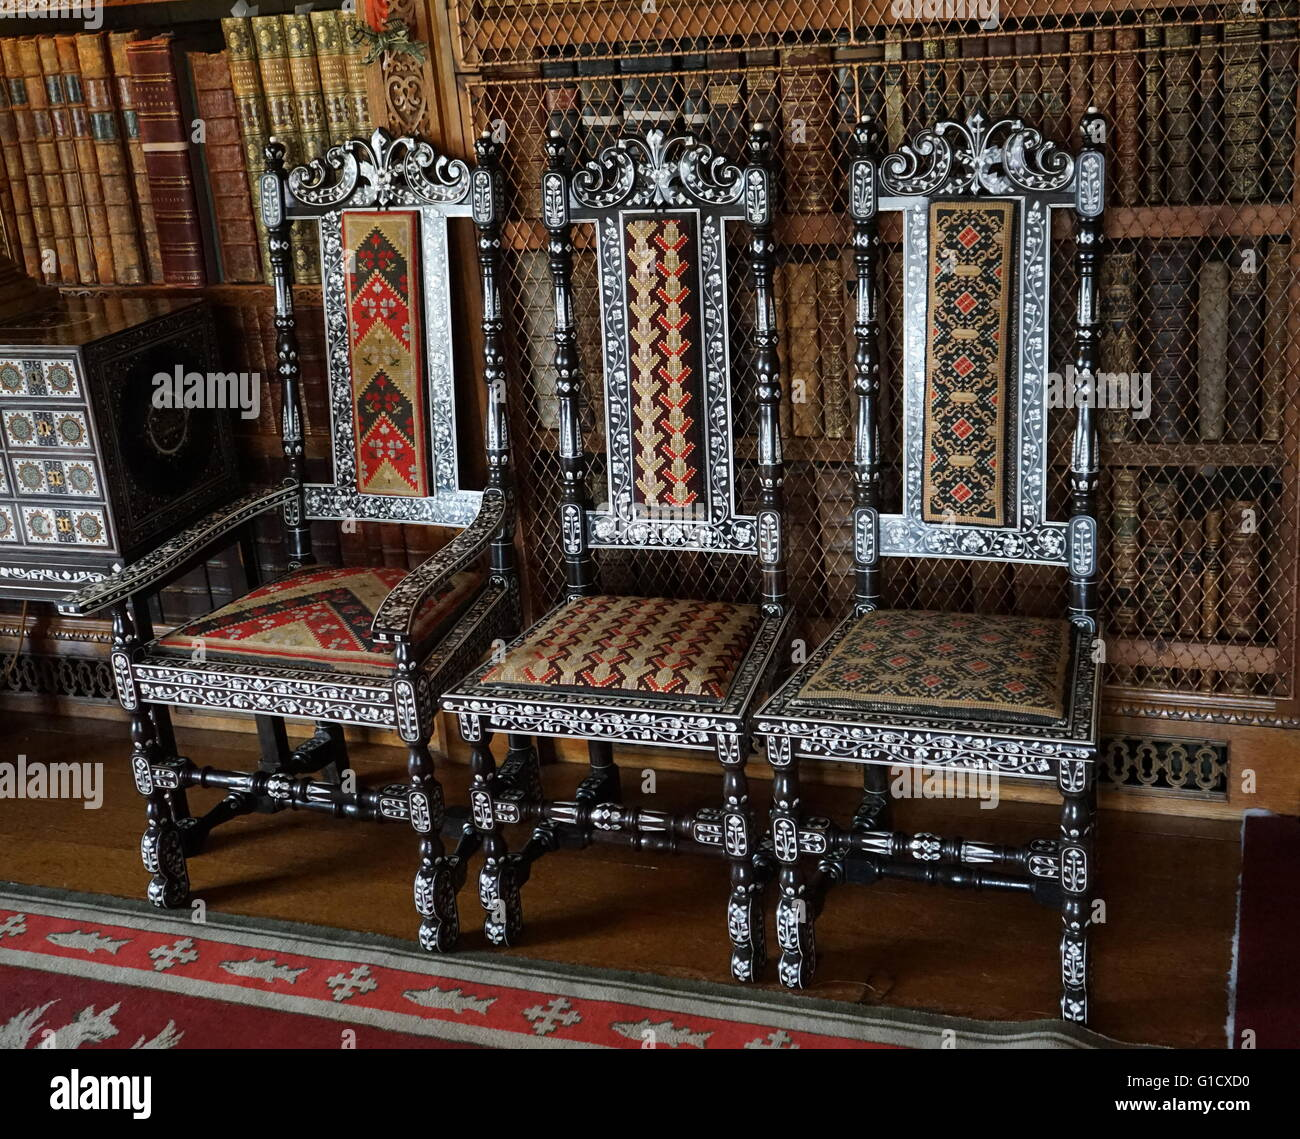 Indian chairs made with Coromandel Ivory, cane and textile. Dated 17th Century - Stock Image